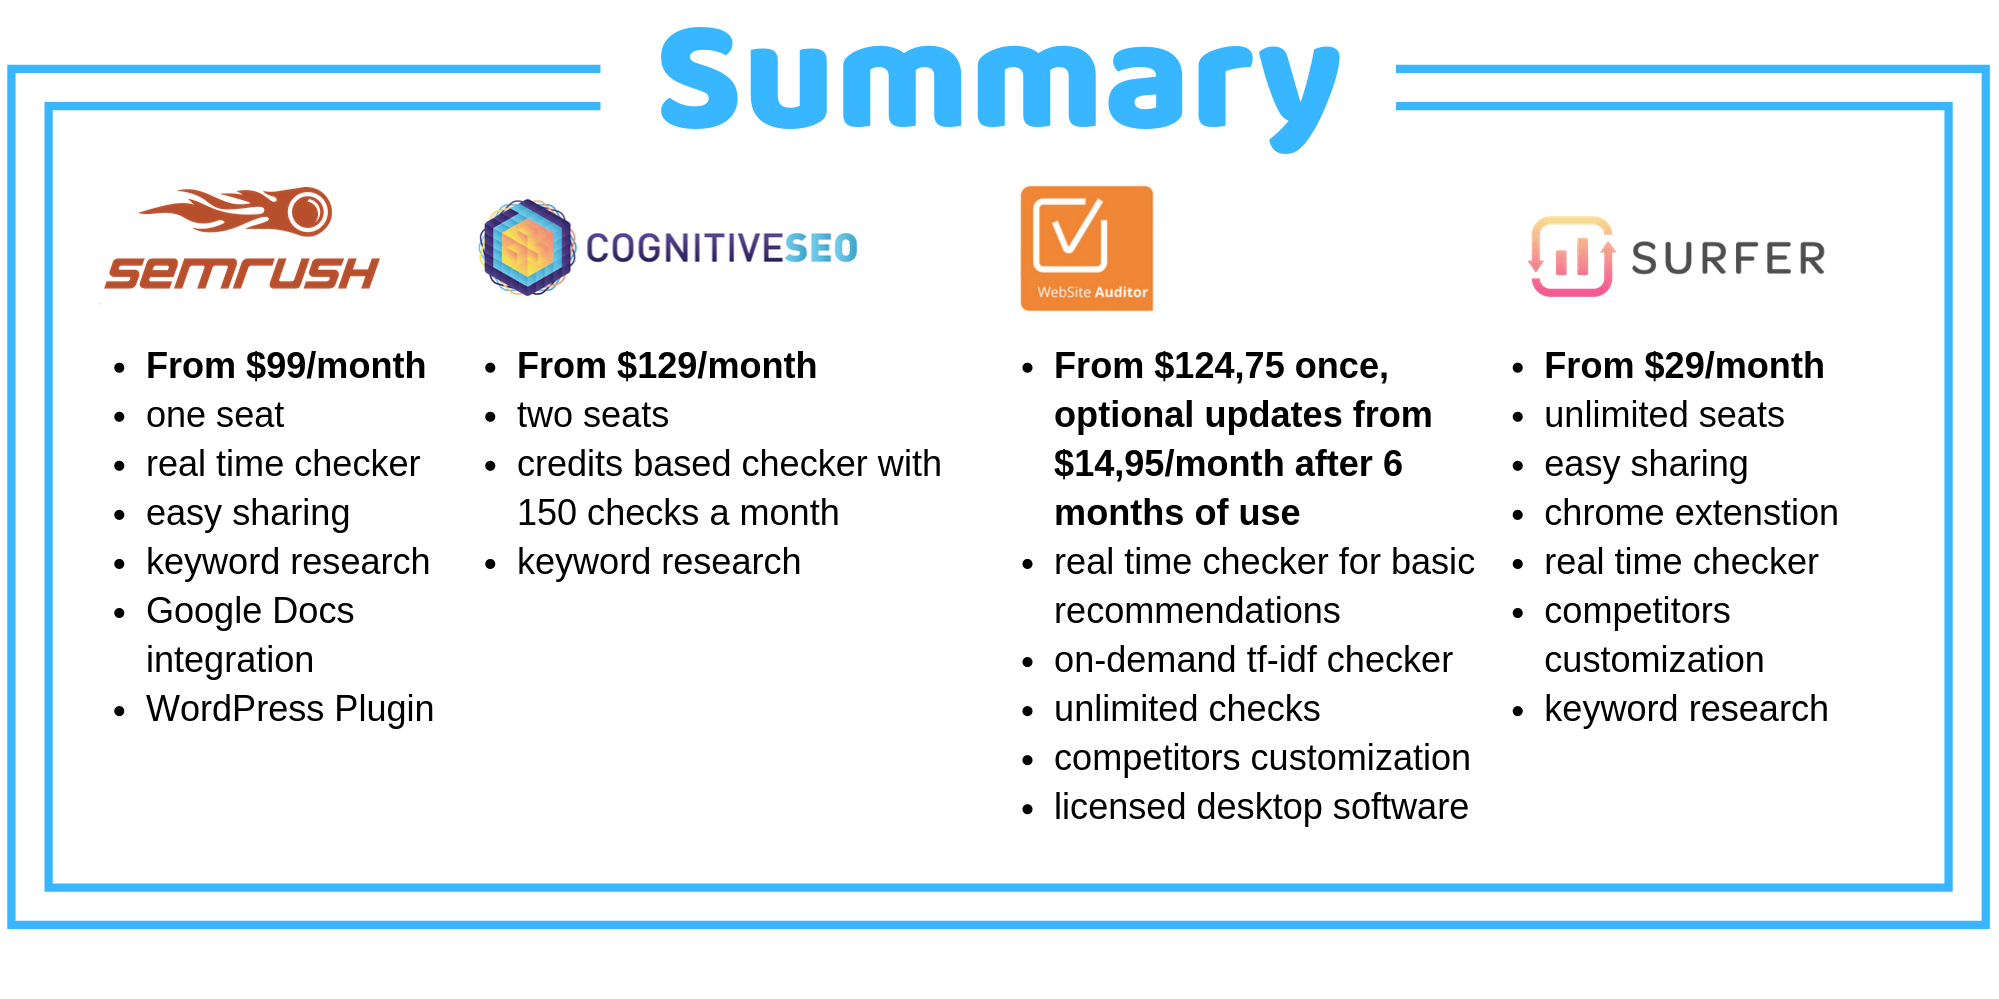 Summary SEO content editor modules in SEMrush, cognitiveSEO, Website Auditor, and Surfer